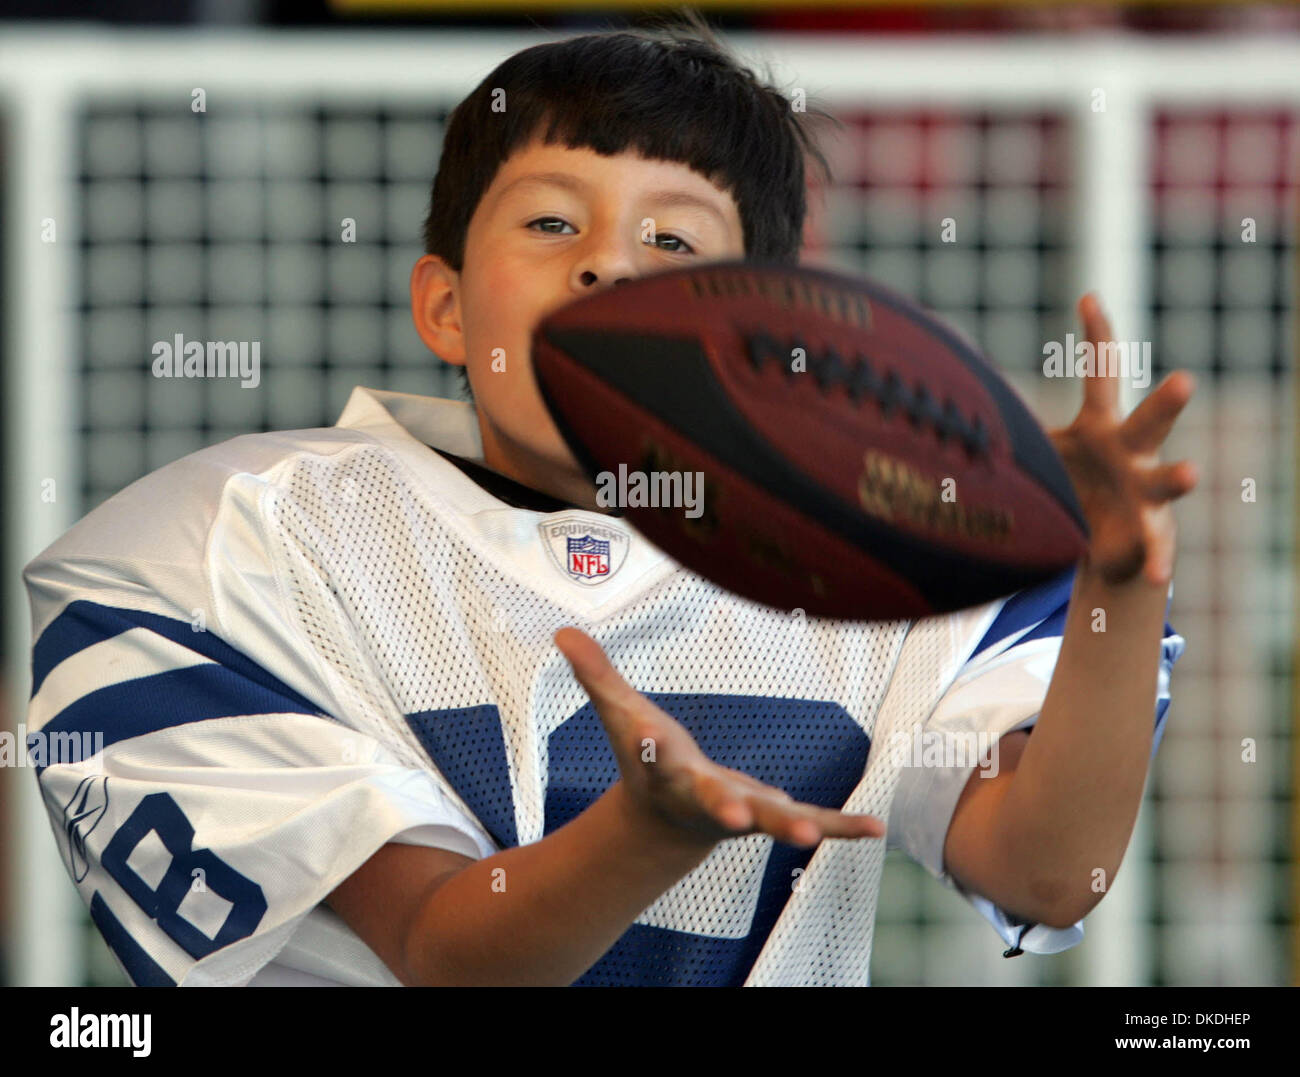 Jan 27, 2007 - Miami, FL, USA - OZZIE JIMENEZ, 8, of West Palm Beach makes a catch at the NFL Experience. Jimenez is a Steelers fans but will be cheering for the Colts to win. - Stock Image